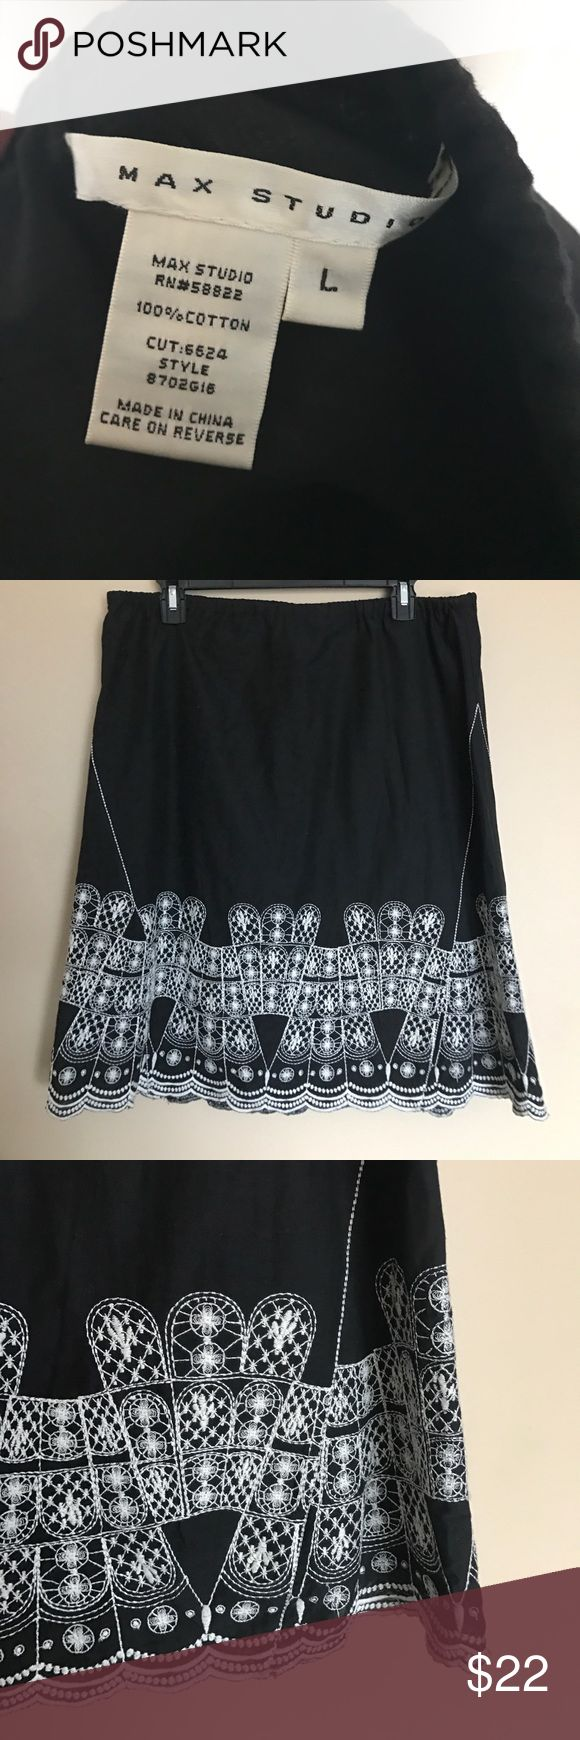 """Max Studio black and white printed detail skirt Max Studio black and white printed vintage like detail skirt! 100% cotton  Approx. 17"""" across and 23"""" long. Can wear this beauty dressed up or down either with sandals and wedges or heels for work. Versatile skirt for all seasons. Max Studio Skirts"""